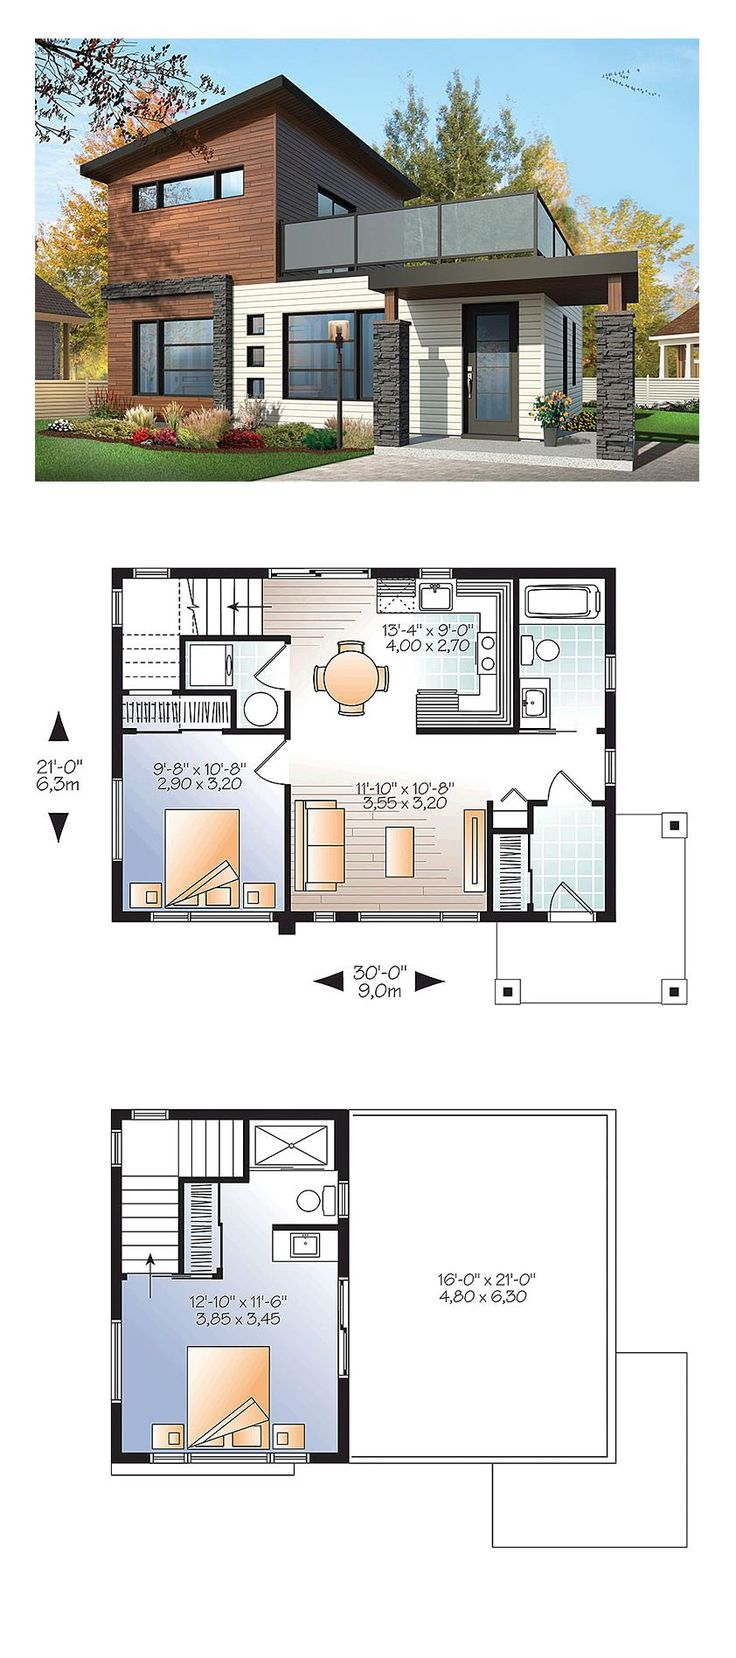 Sensational Top 25 Ideas About Modern Tiny House On Pinterest Mini Homes Largest Home Design Picture Inspirations Pitcheantrous